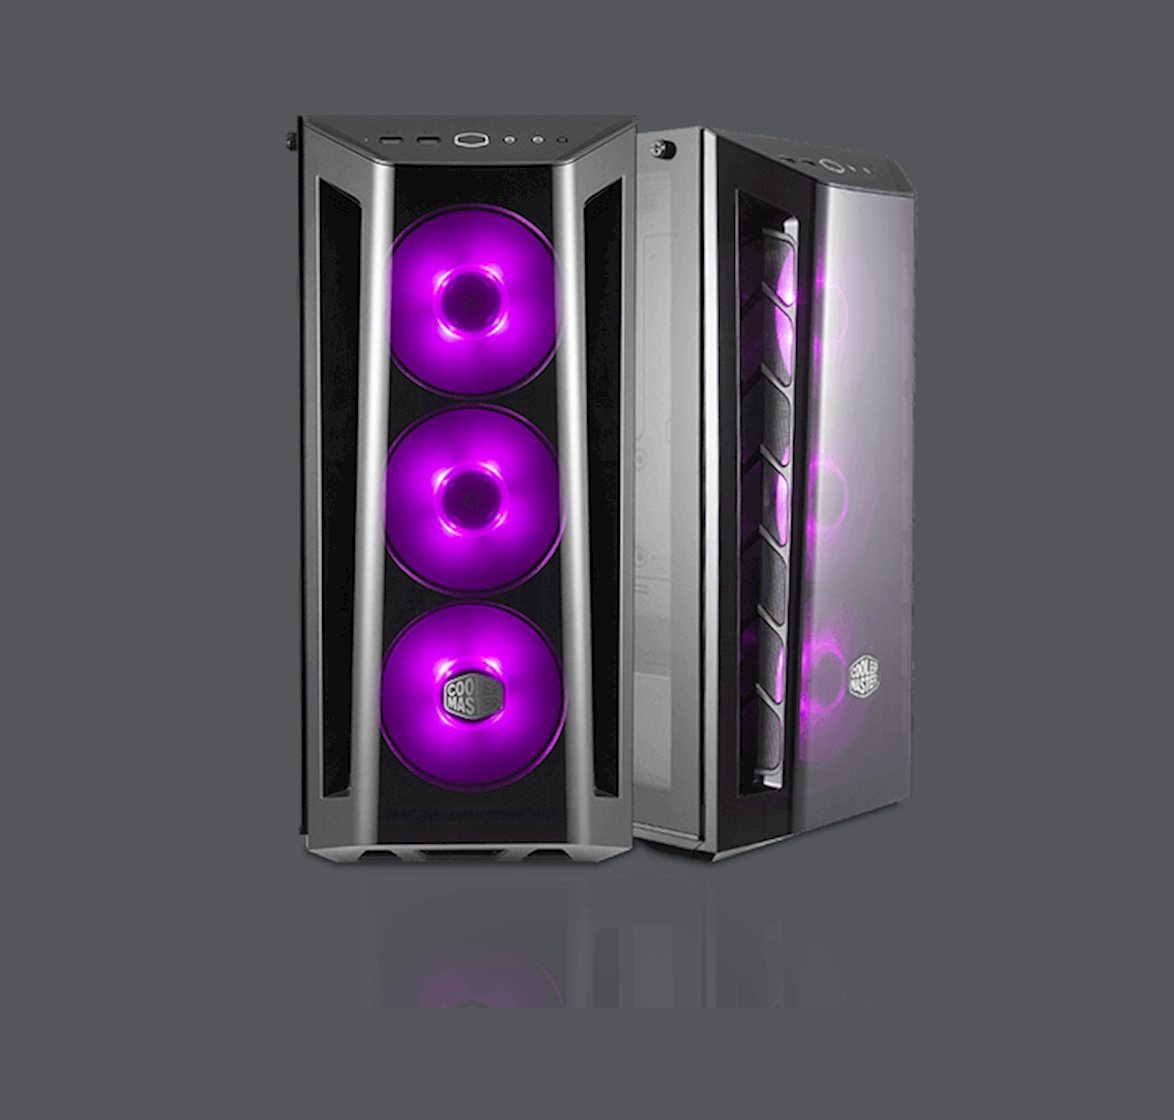 RGB Led Fans And Lighting Control